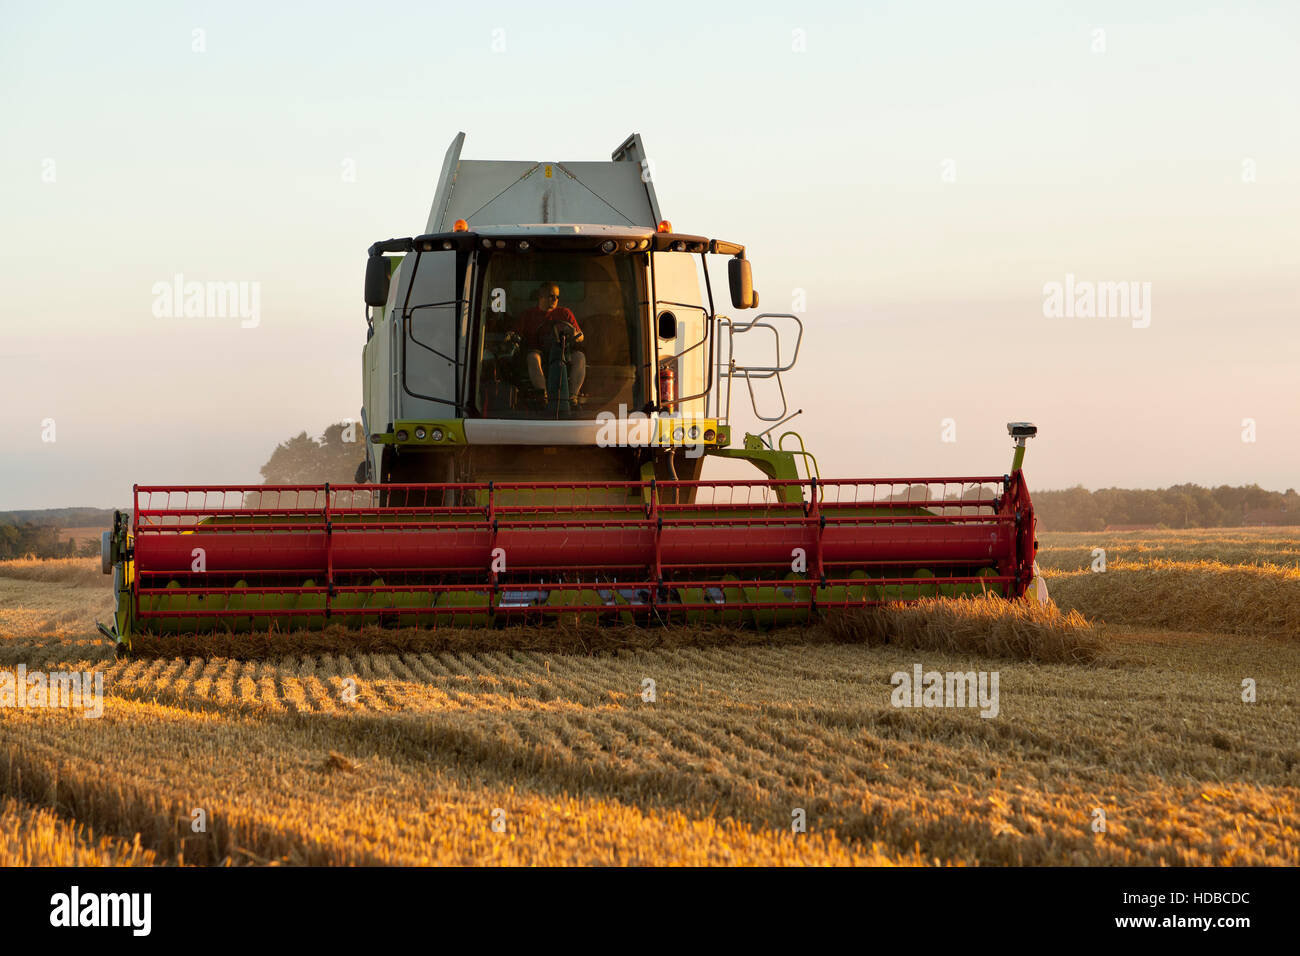 A combined harvester cutting corn - Stock Image